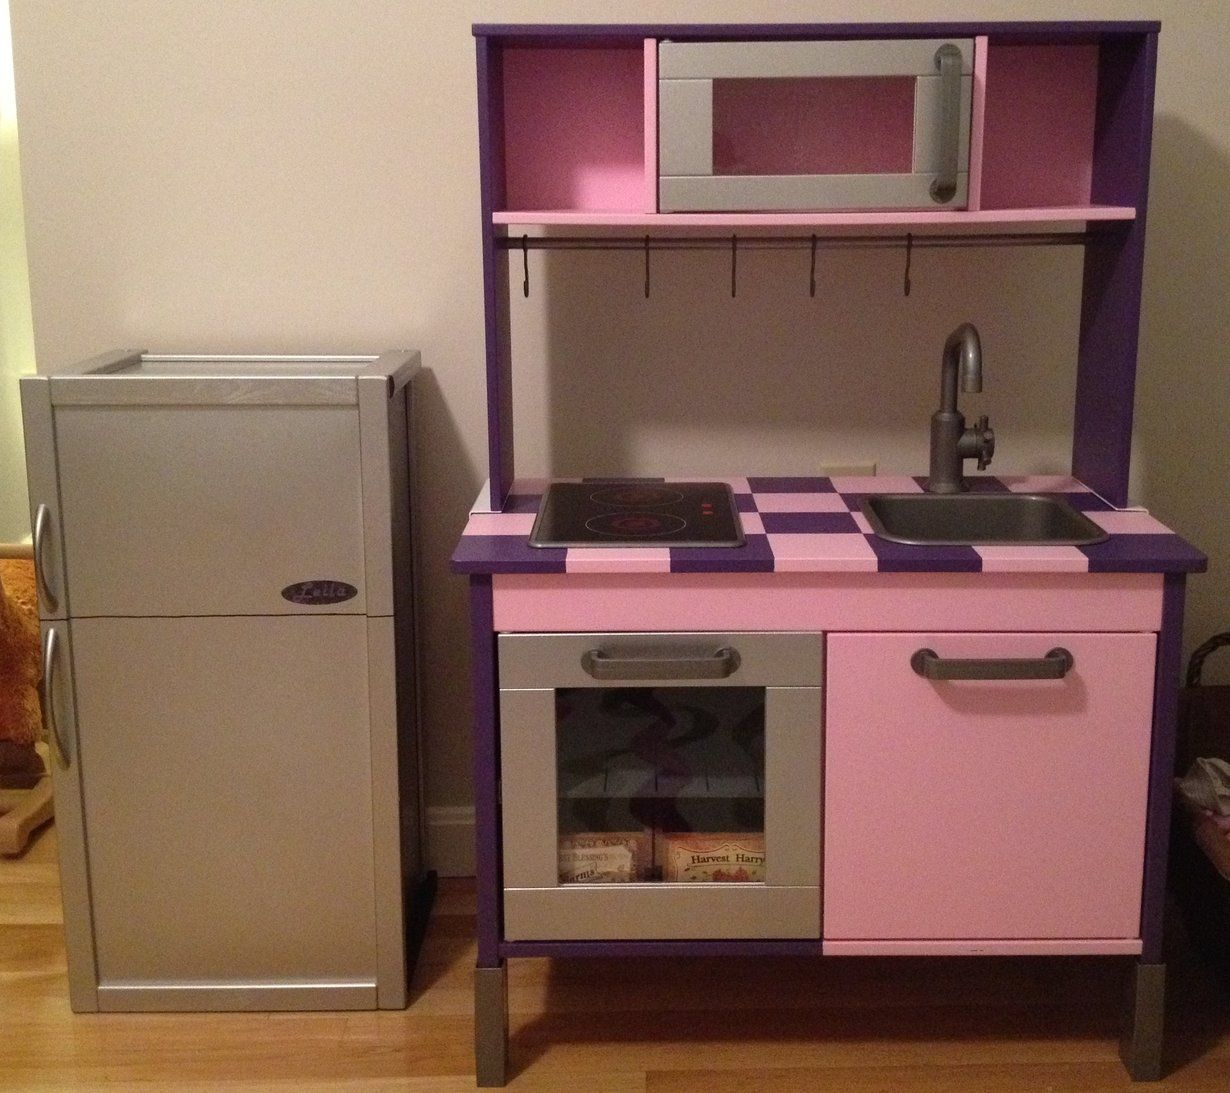 Ikea Hack Kinderküche Duktig Kitchen Goes From Bland To Bling Ikea Hacks